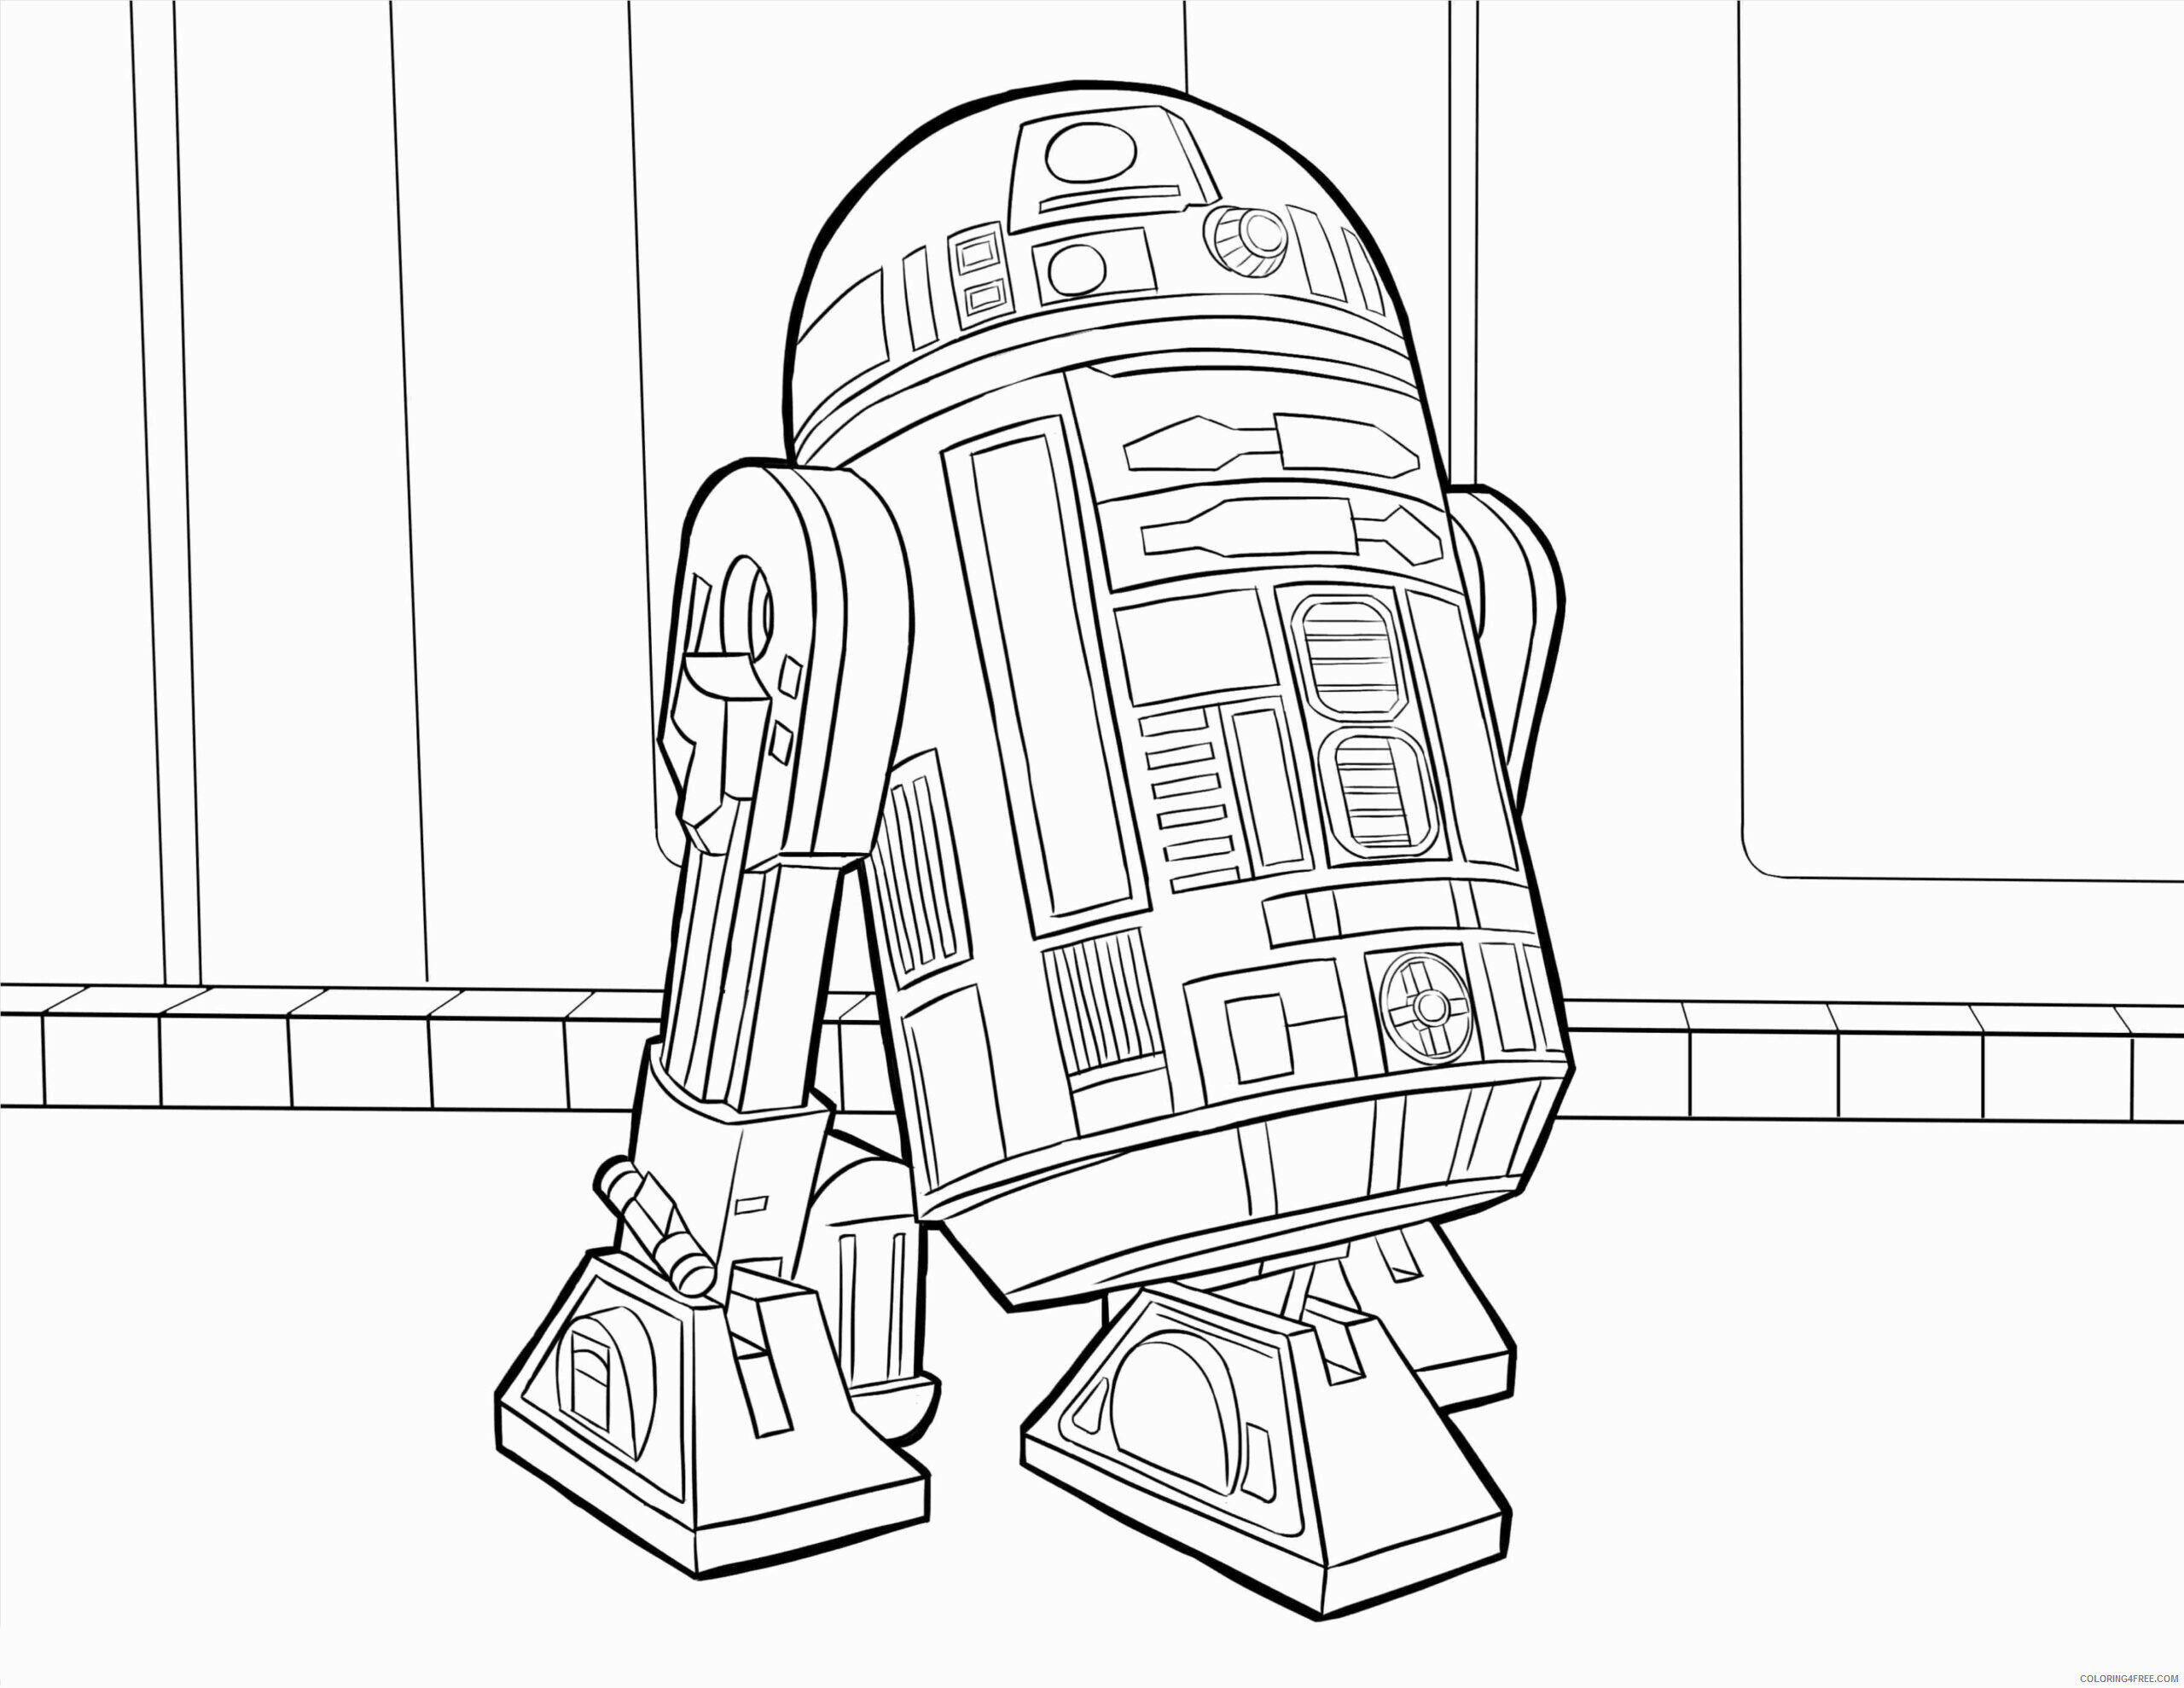 Star Wars R2D2 Coloring Pages TV Film Free R2D2 Printable 2020 08060 Coloring4free